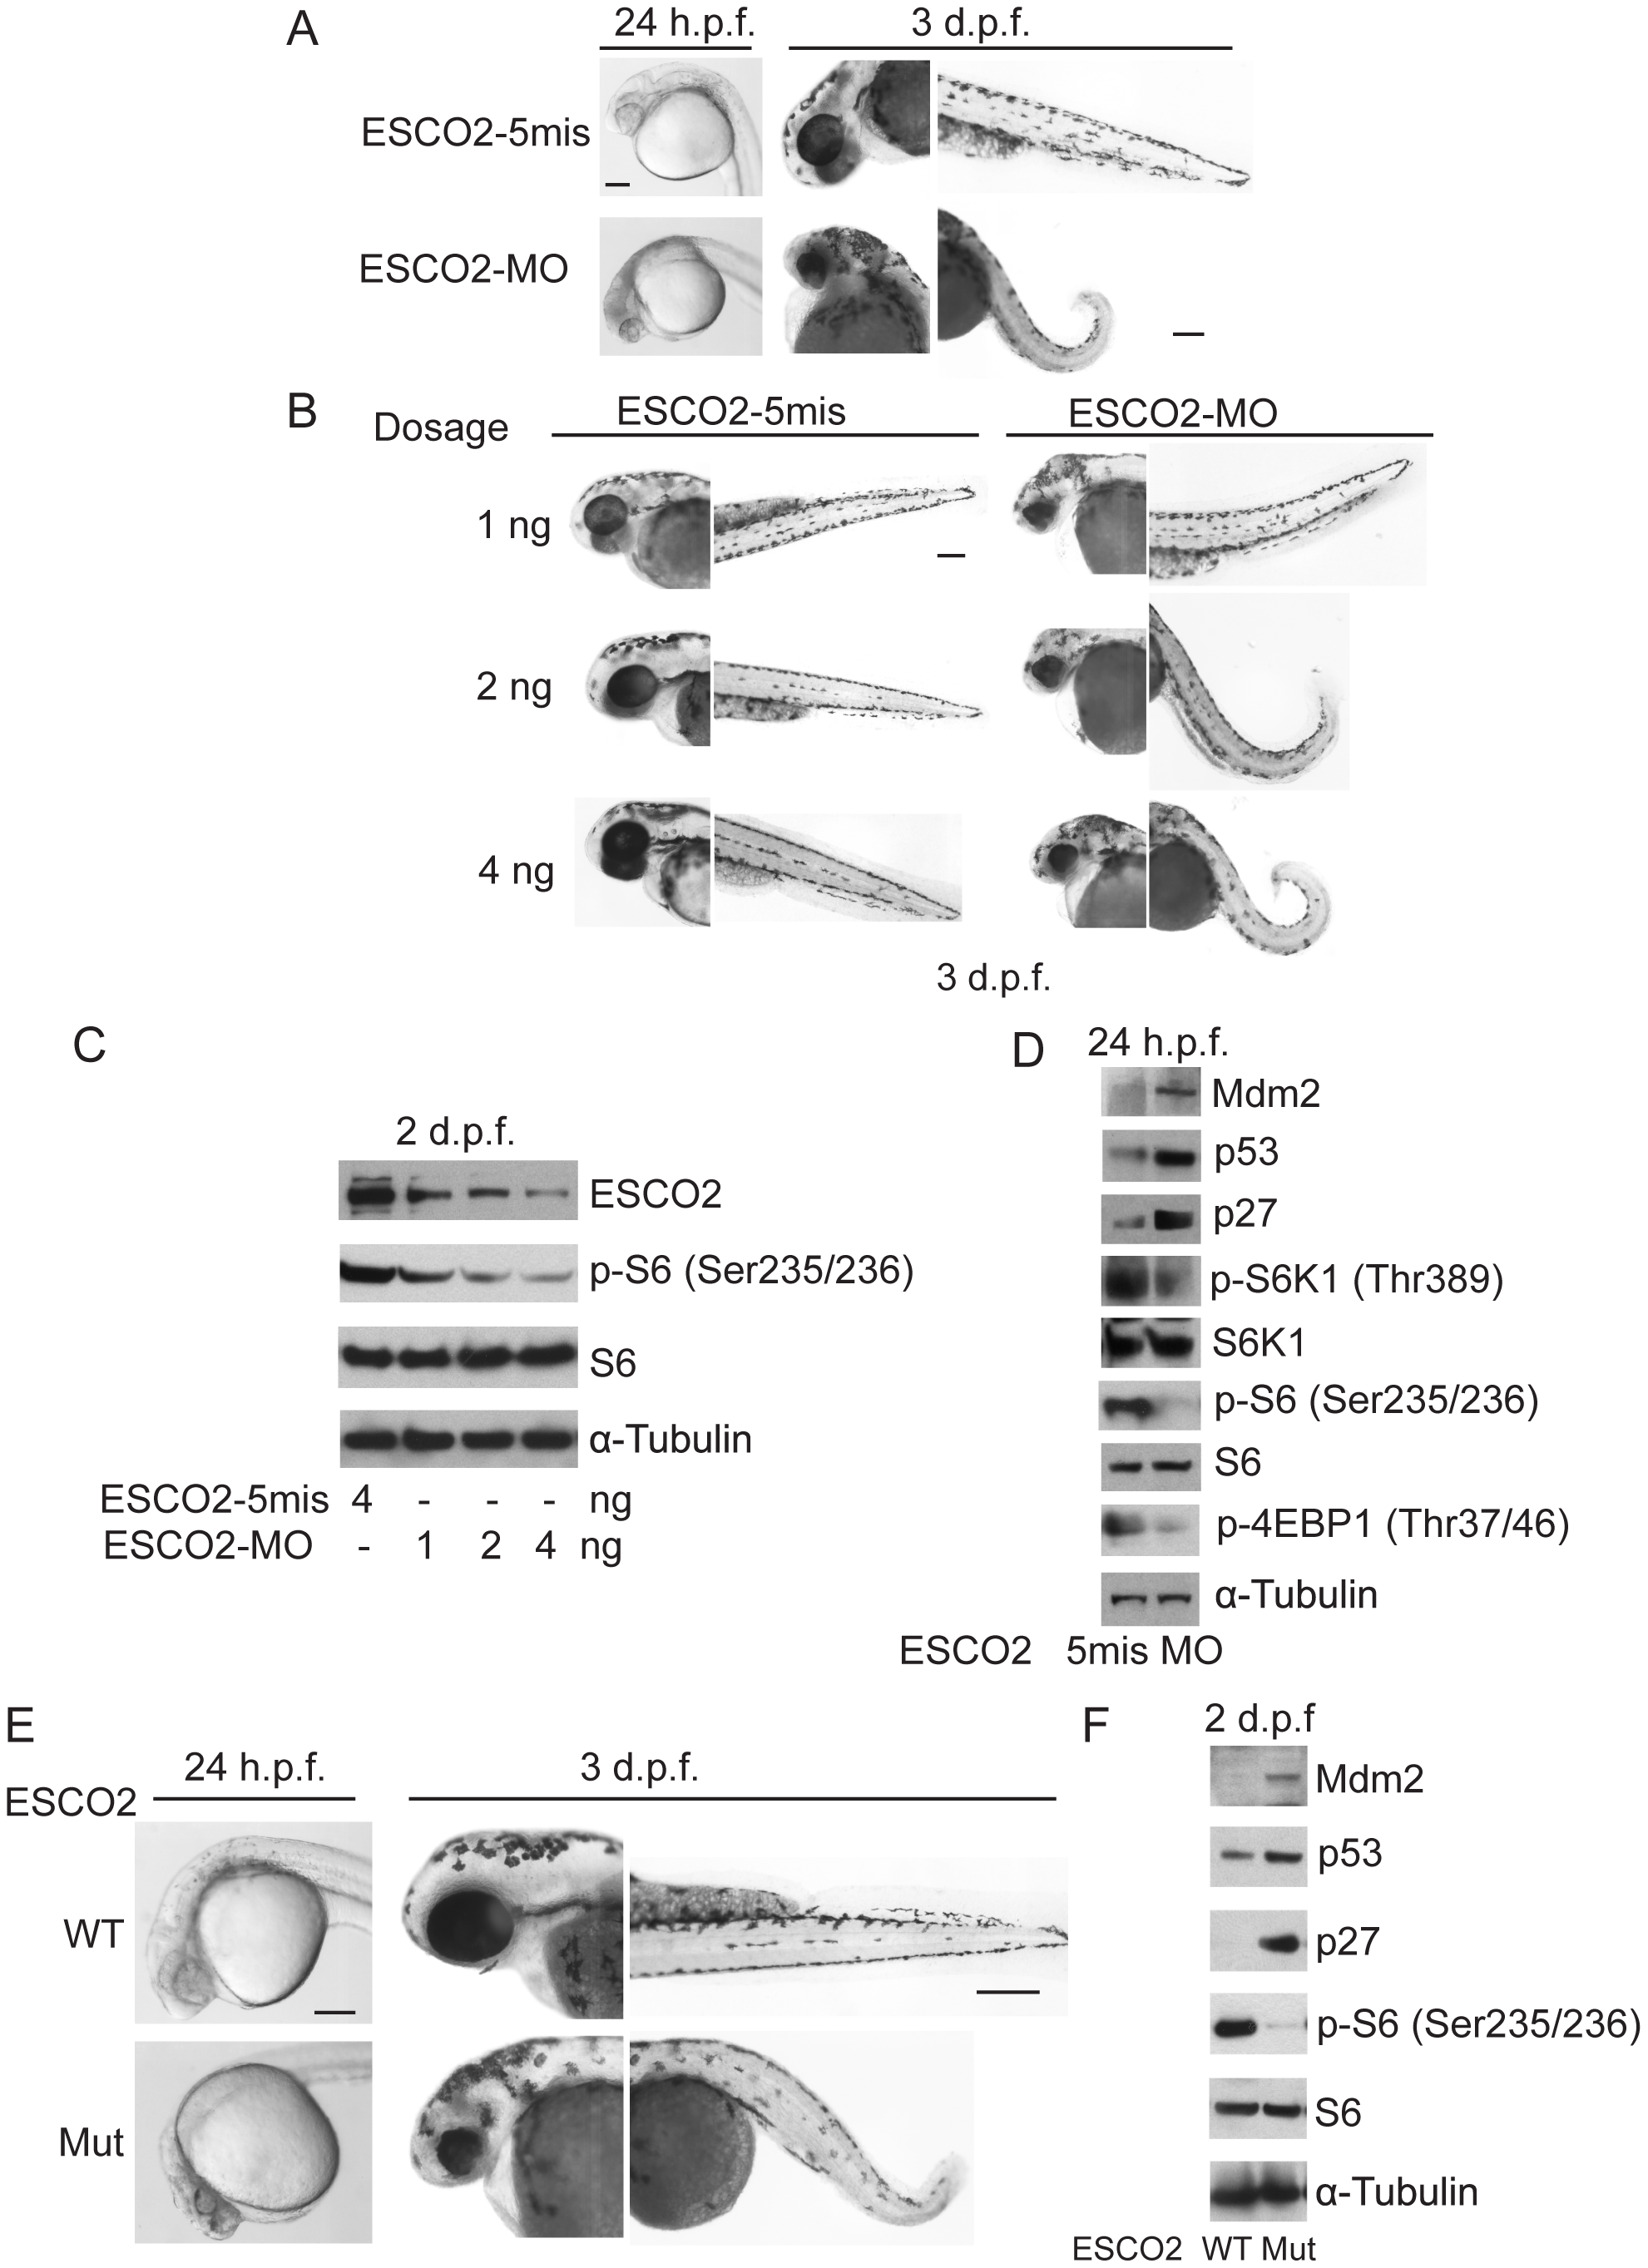 Reduced ESCO2 function is associated with mTOR inhibition, p53 activation, and dramatic developmental phenotypes in zebrafish.